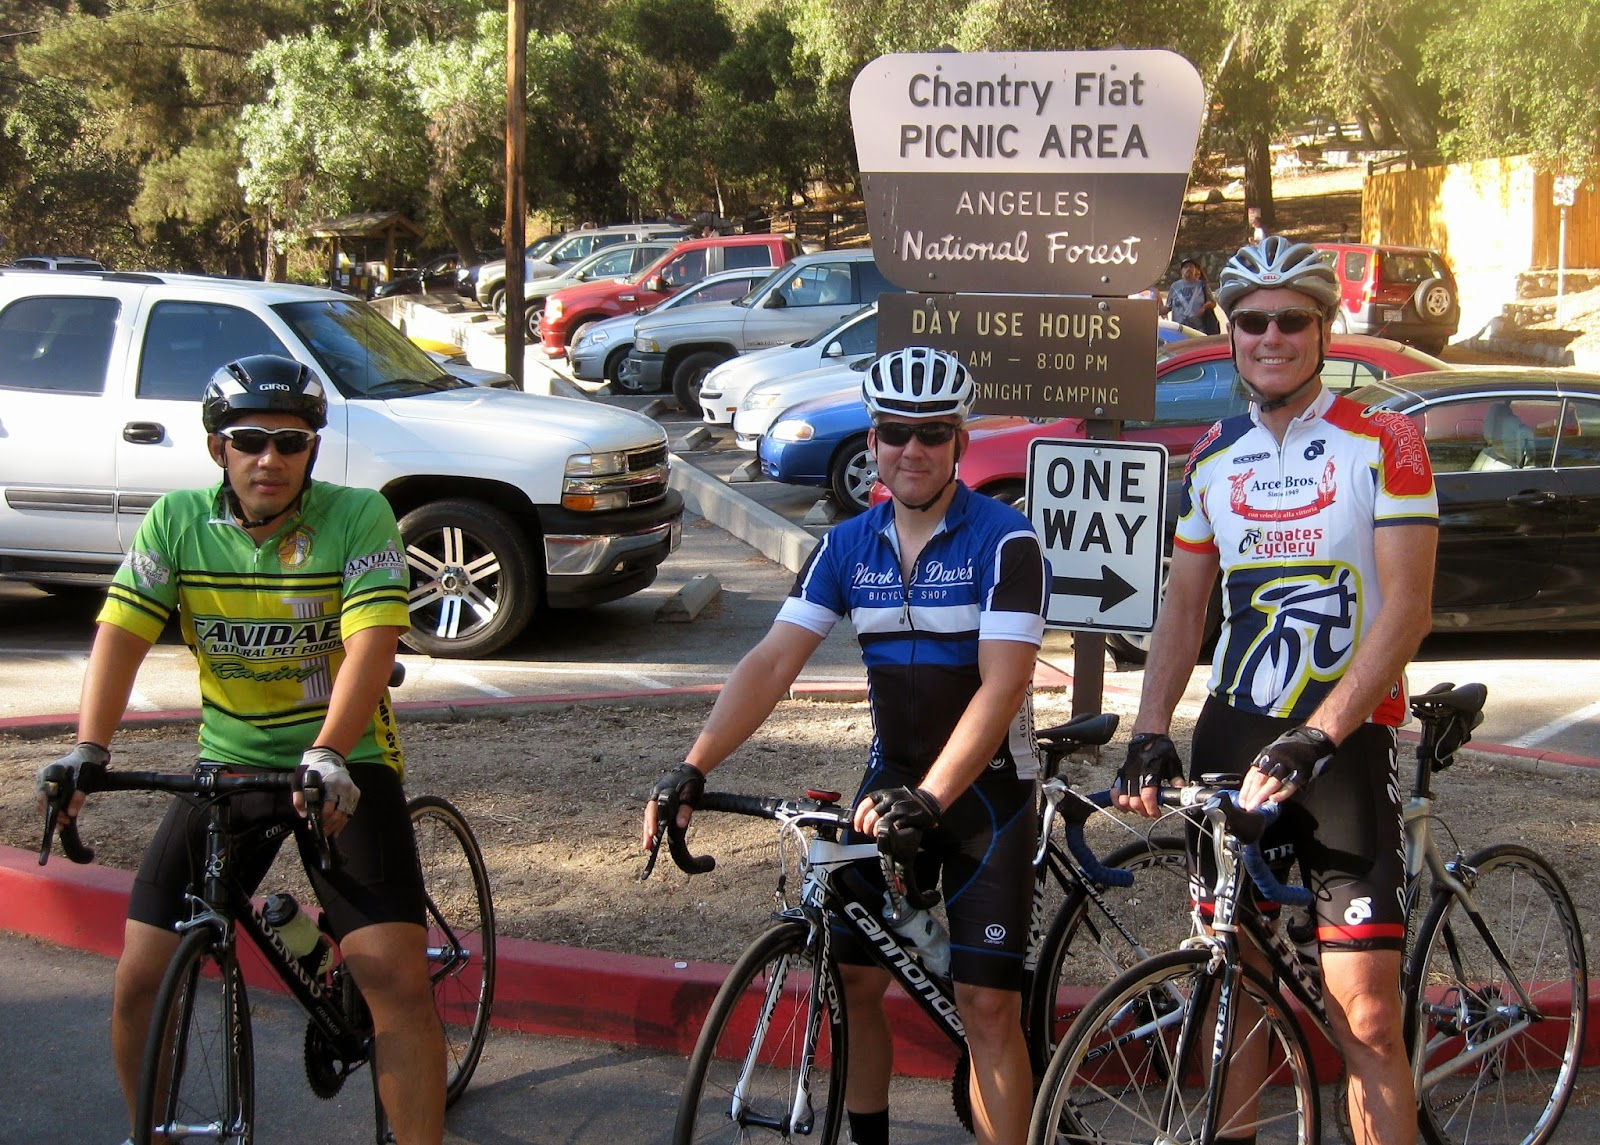 bicyclefriends: san dimas to chantry flats to the rose bowl